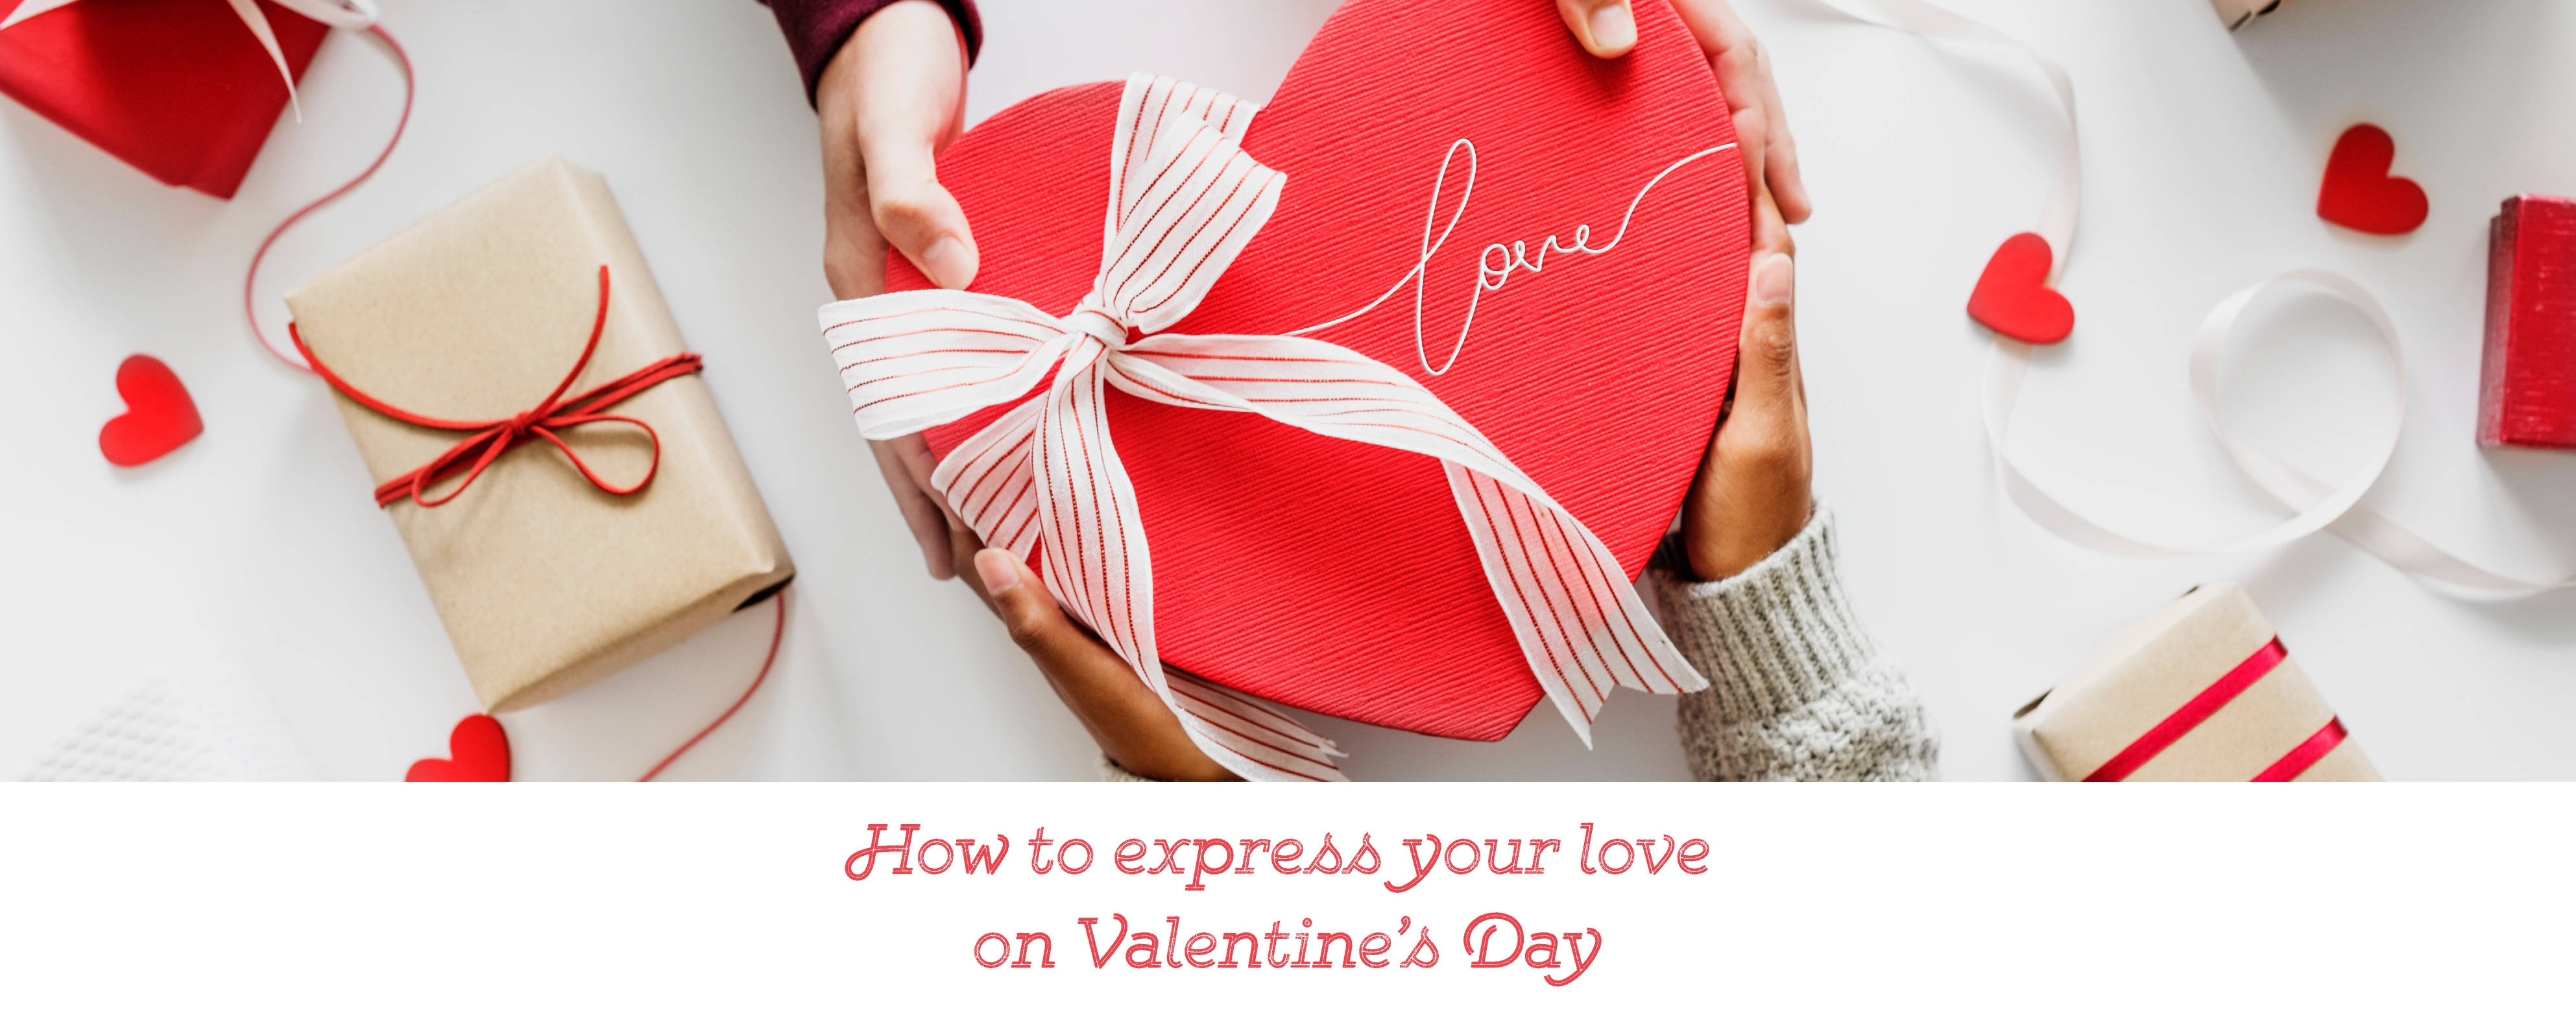 HHow to express your love on Valentine's Day